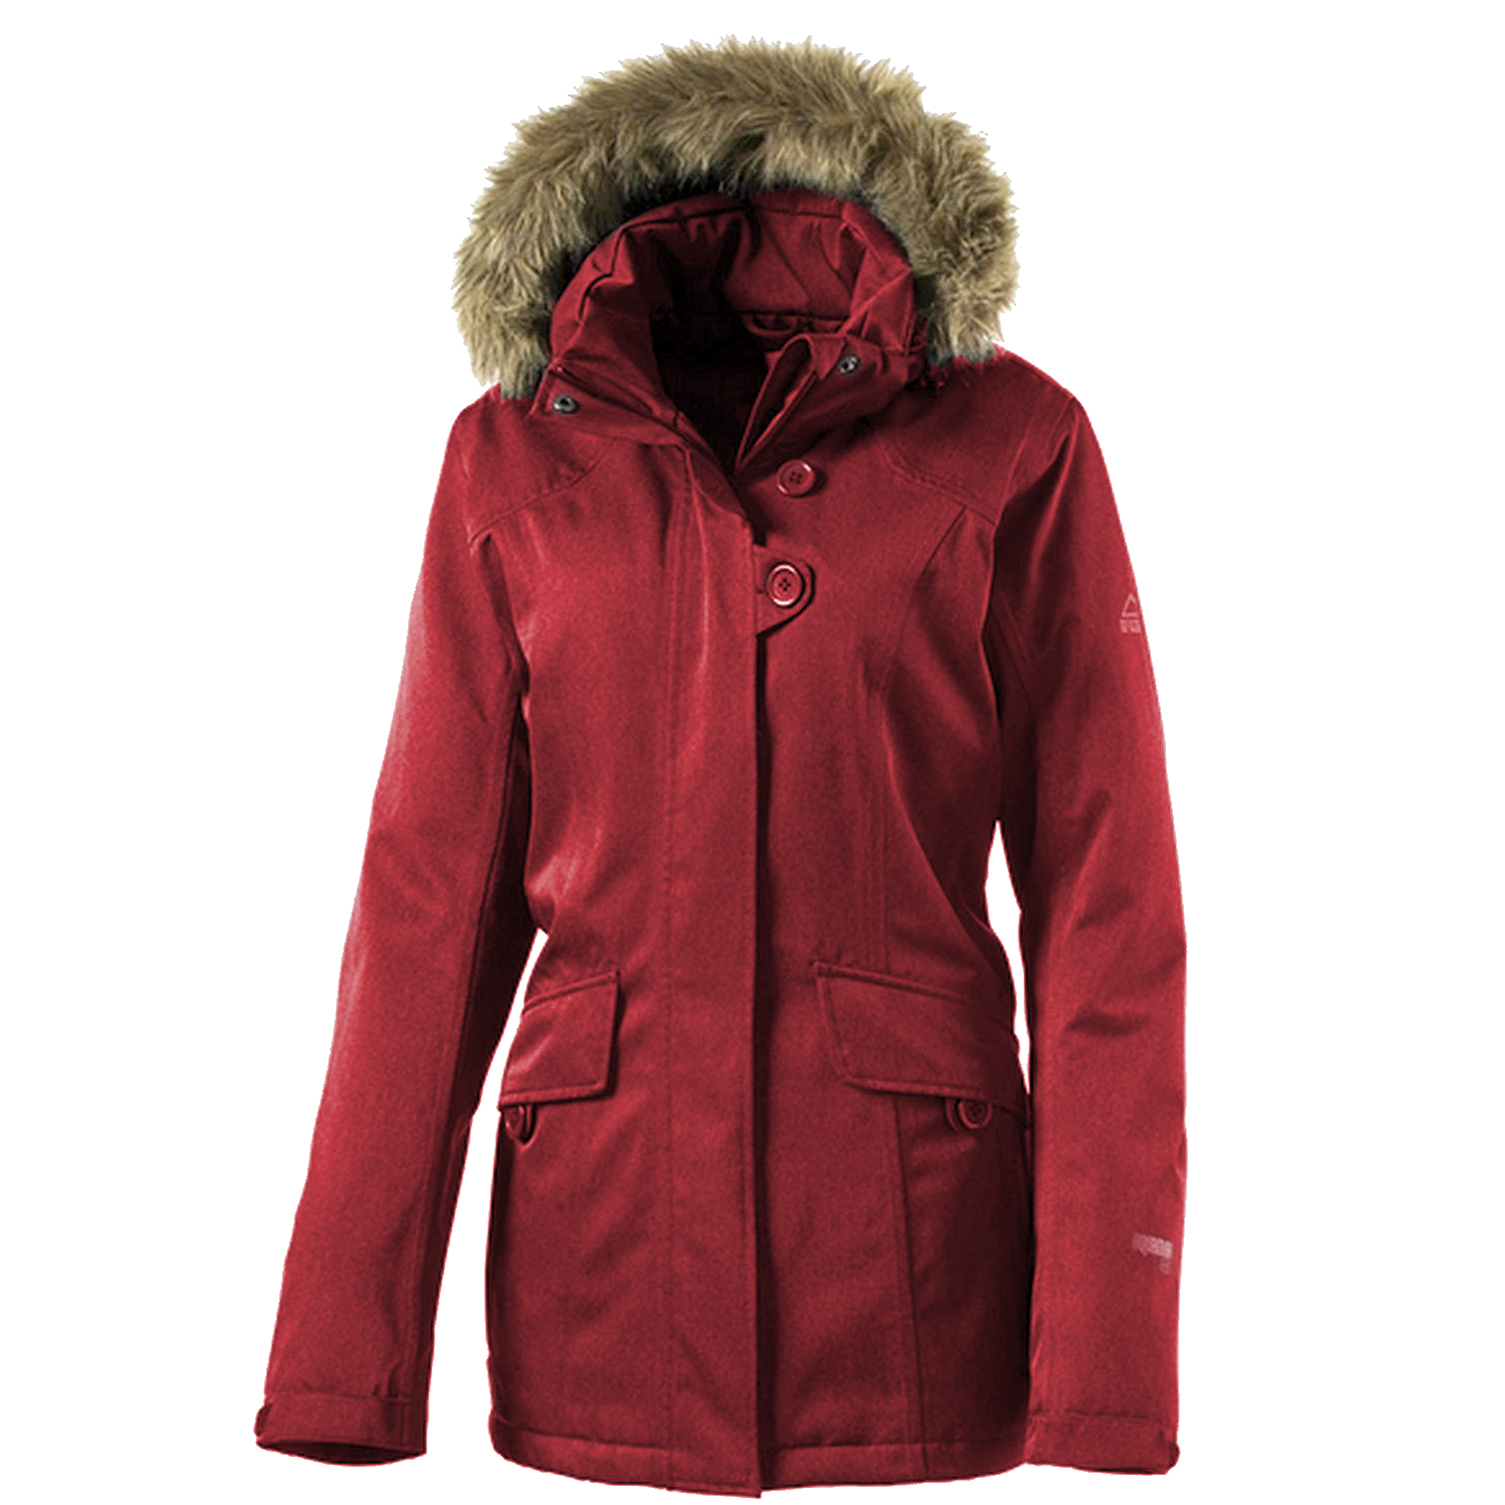 mckinley mount allen winterjacke damen jacke red wine ebay. Black Bedroom Furniture Sets. Home Design Ideas